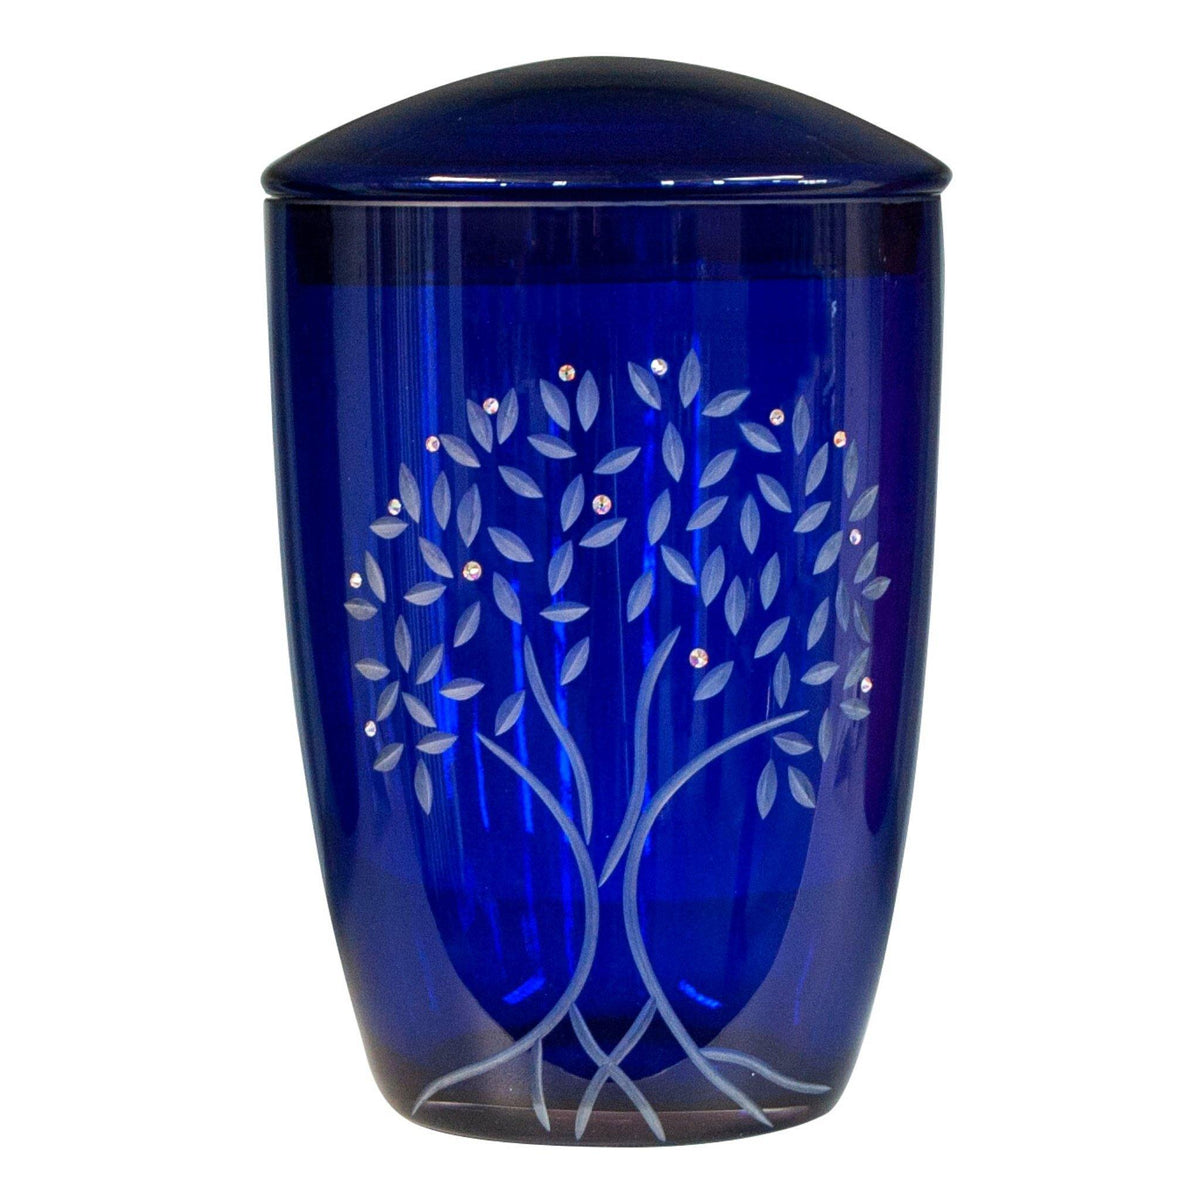 Wilton Tree Of Life Glass with Swarovski Crystal Cremation Ashes Urn Blue - Urns UK